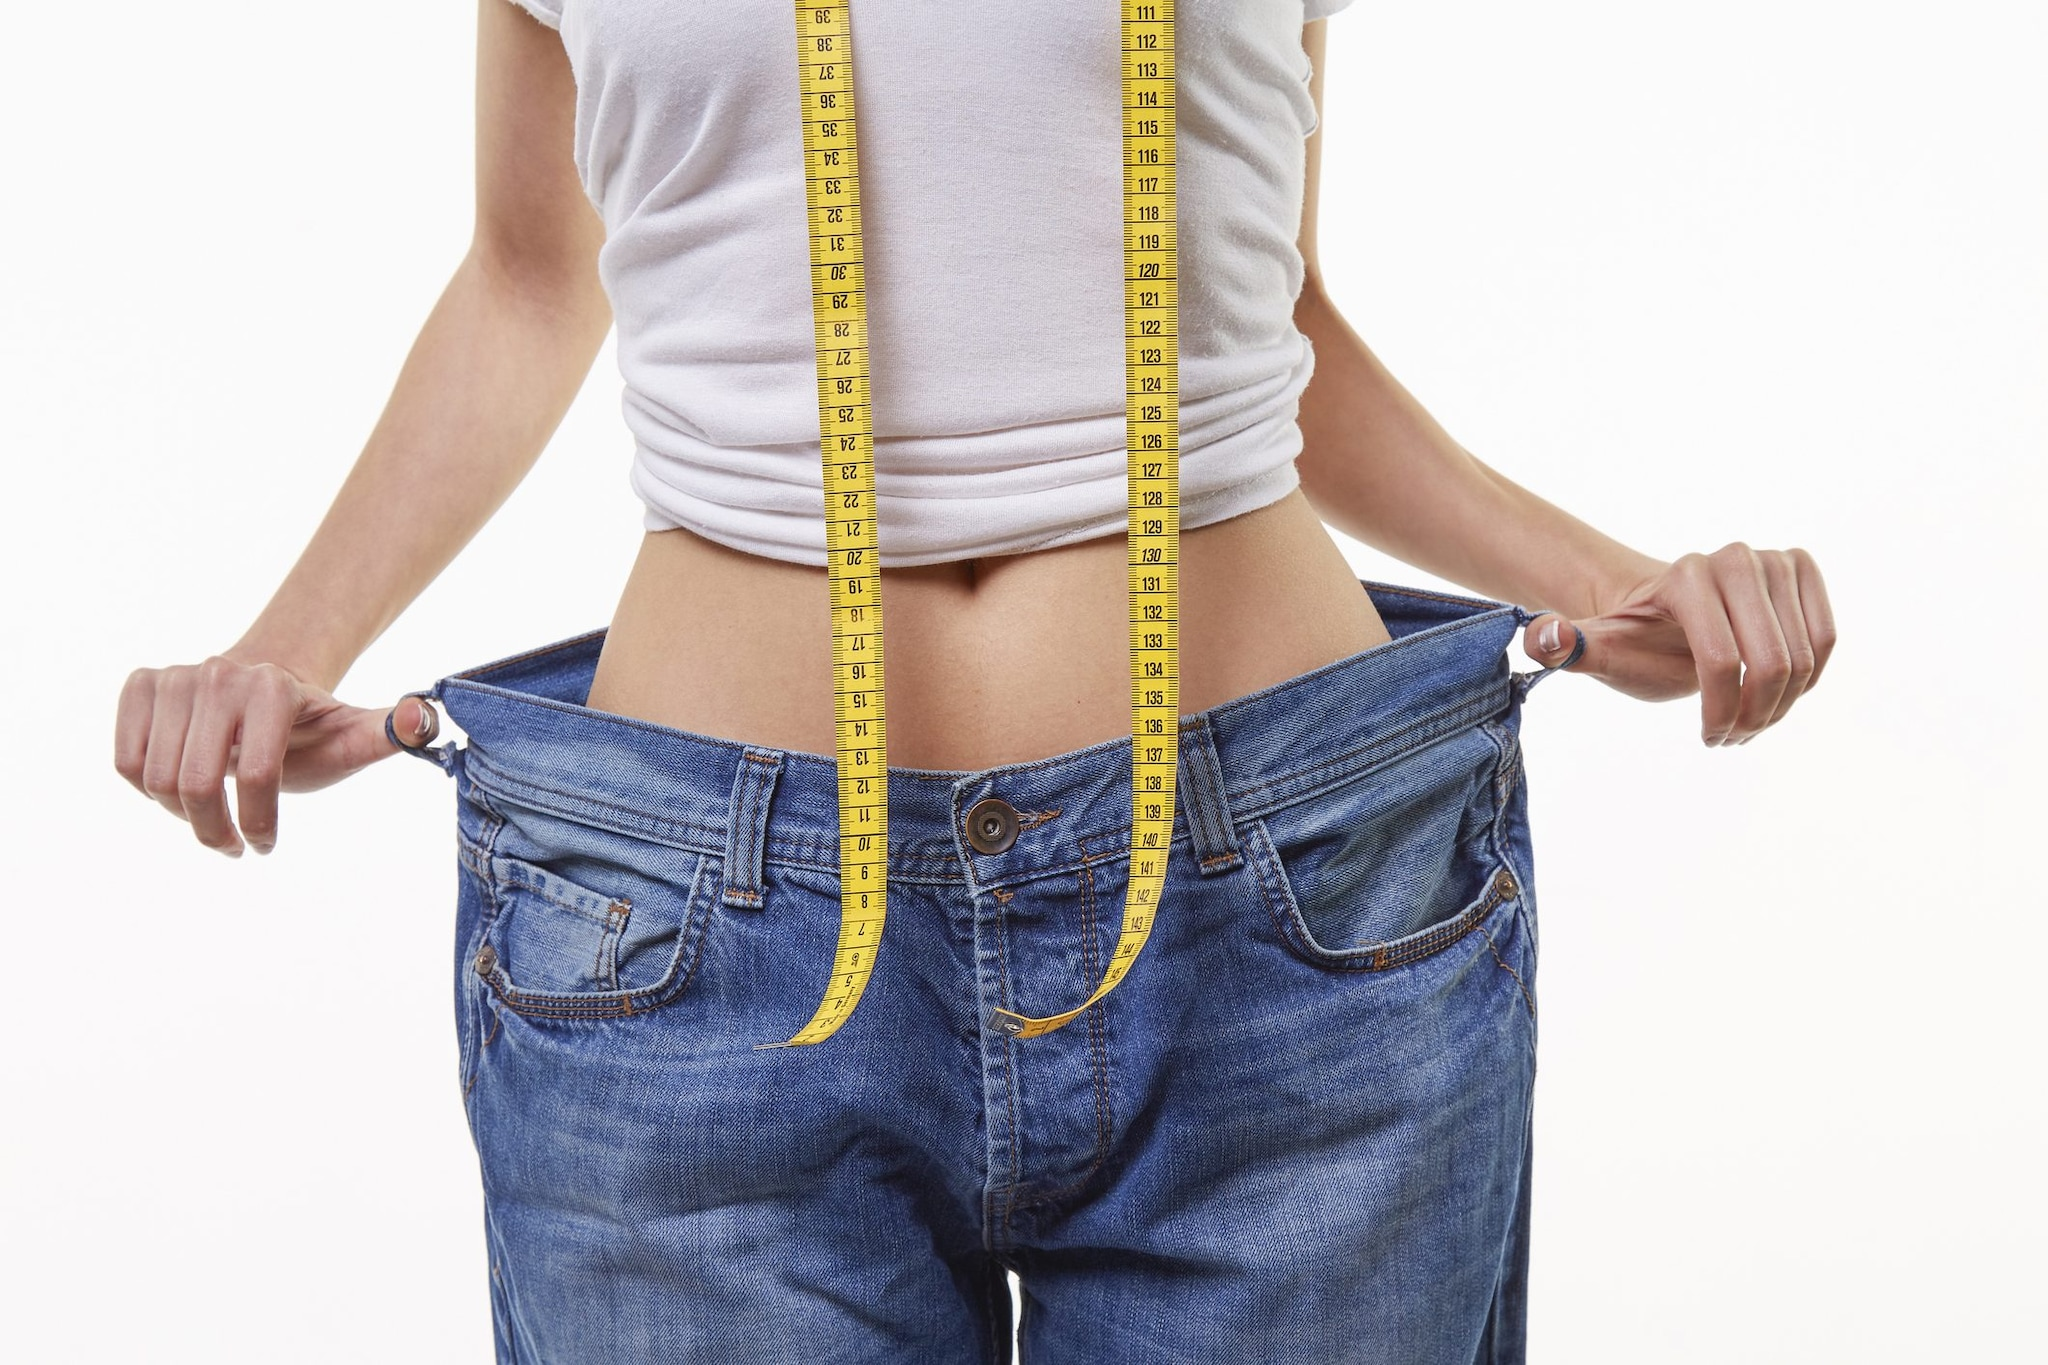 Other Beneficial Healthy Weight Loss Guidelines